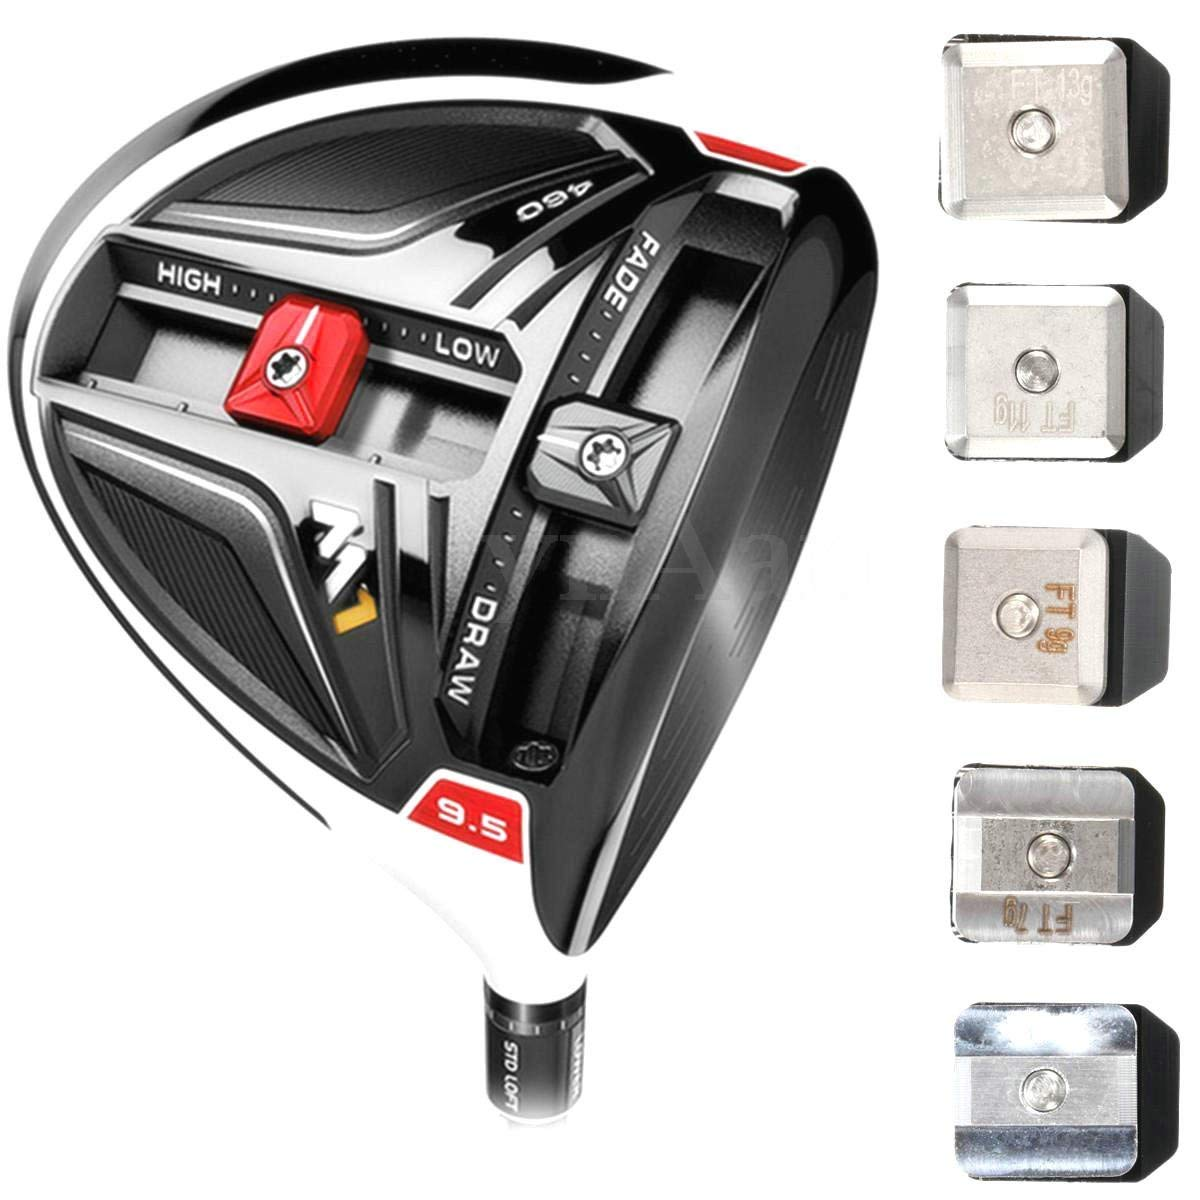 New Performance Golf Slide Movable Weight Taylor Made M1 Driver M1 Tour Issu 460CC(9g) by XIAMI (Image #4)